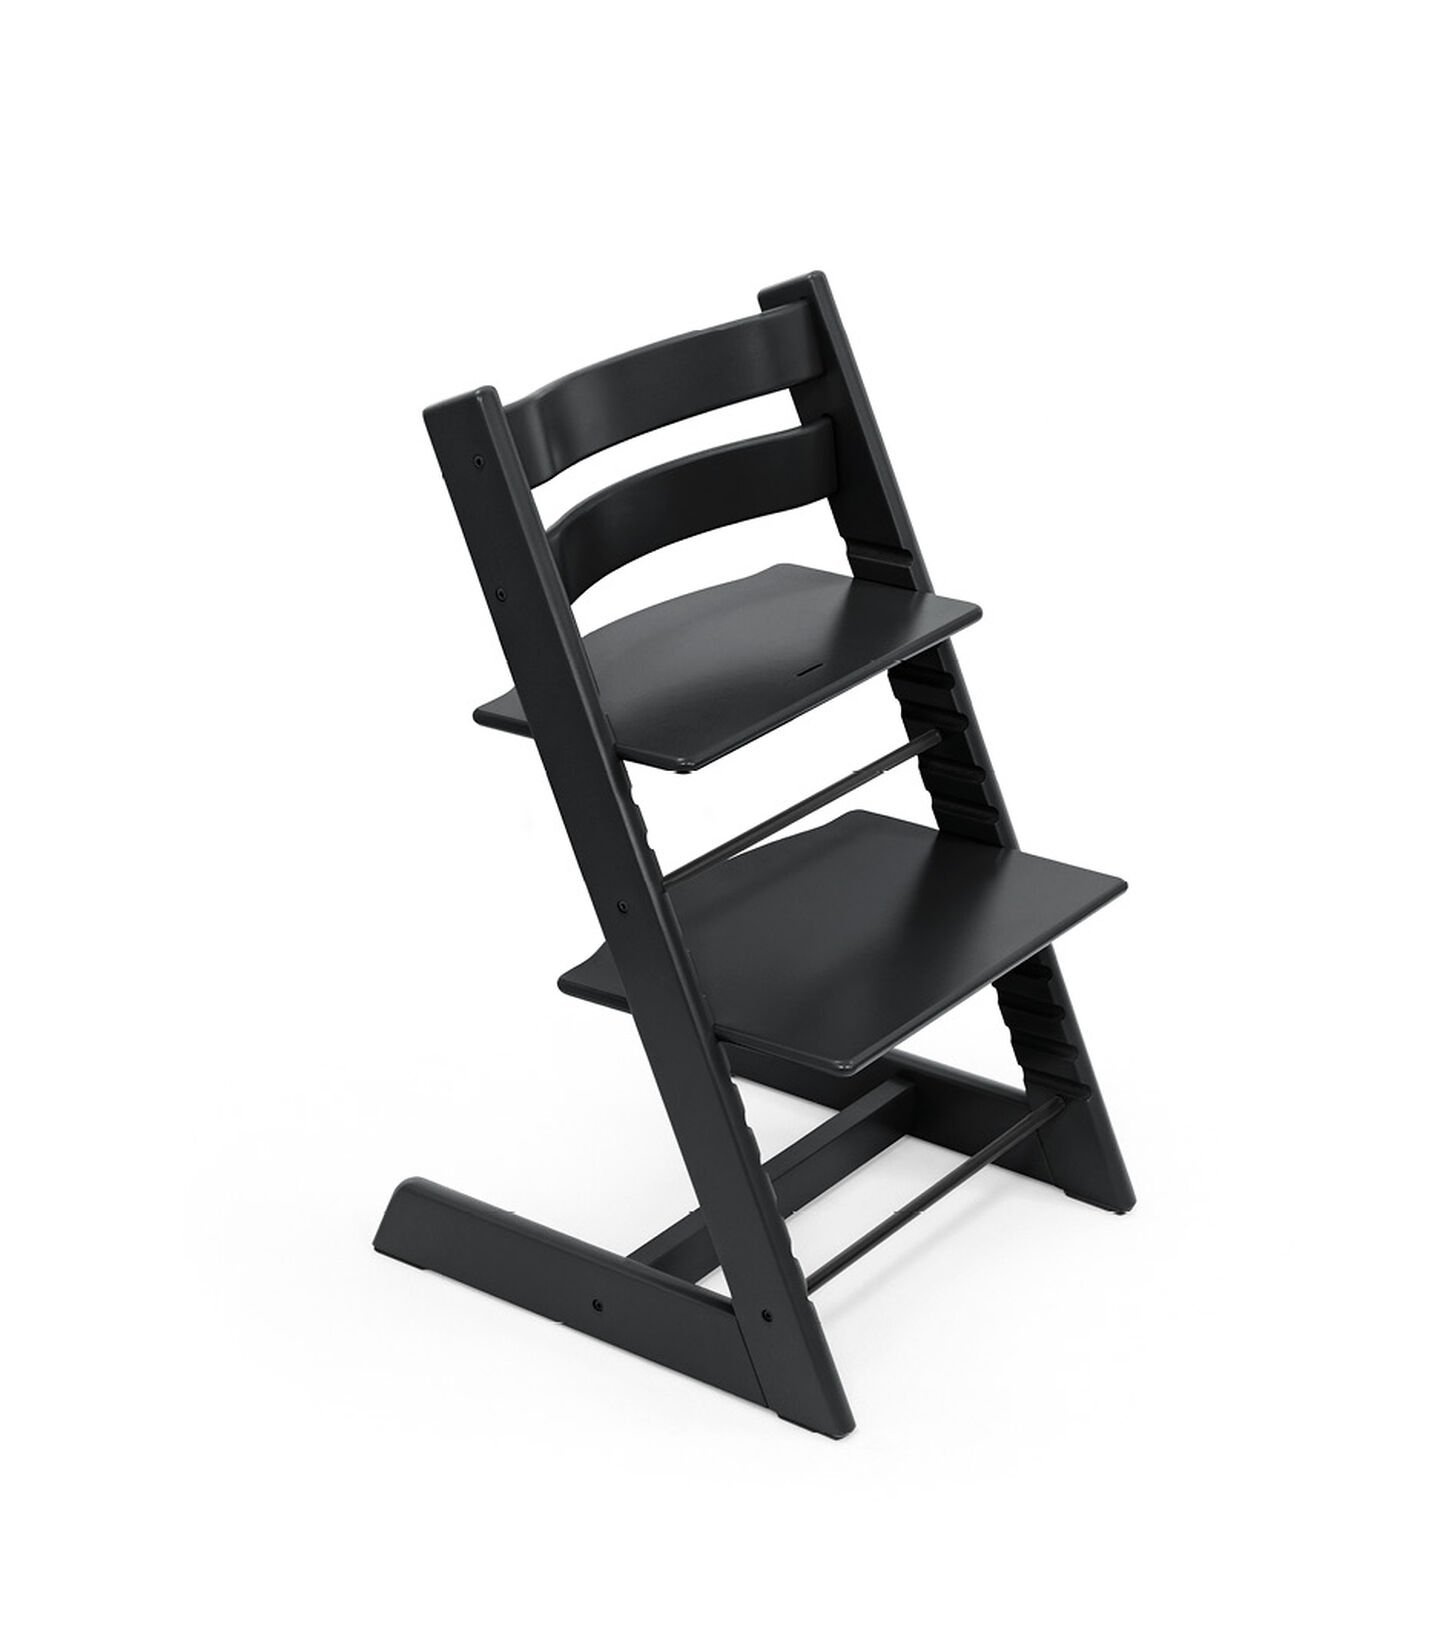 Tripp Trapp® Chair Black, Black, mainview view 2